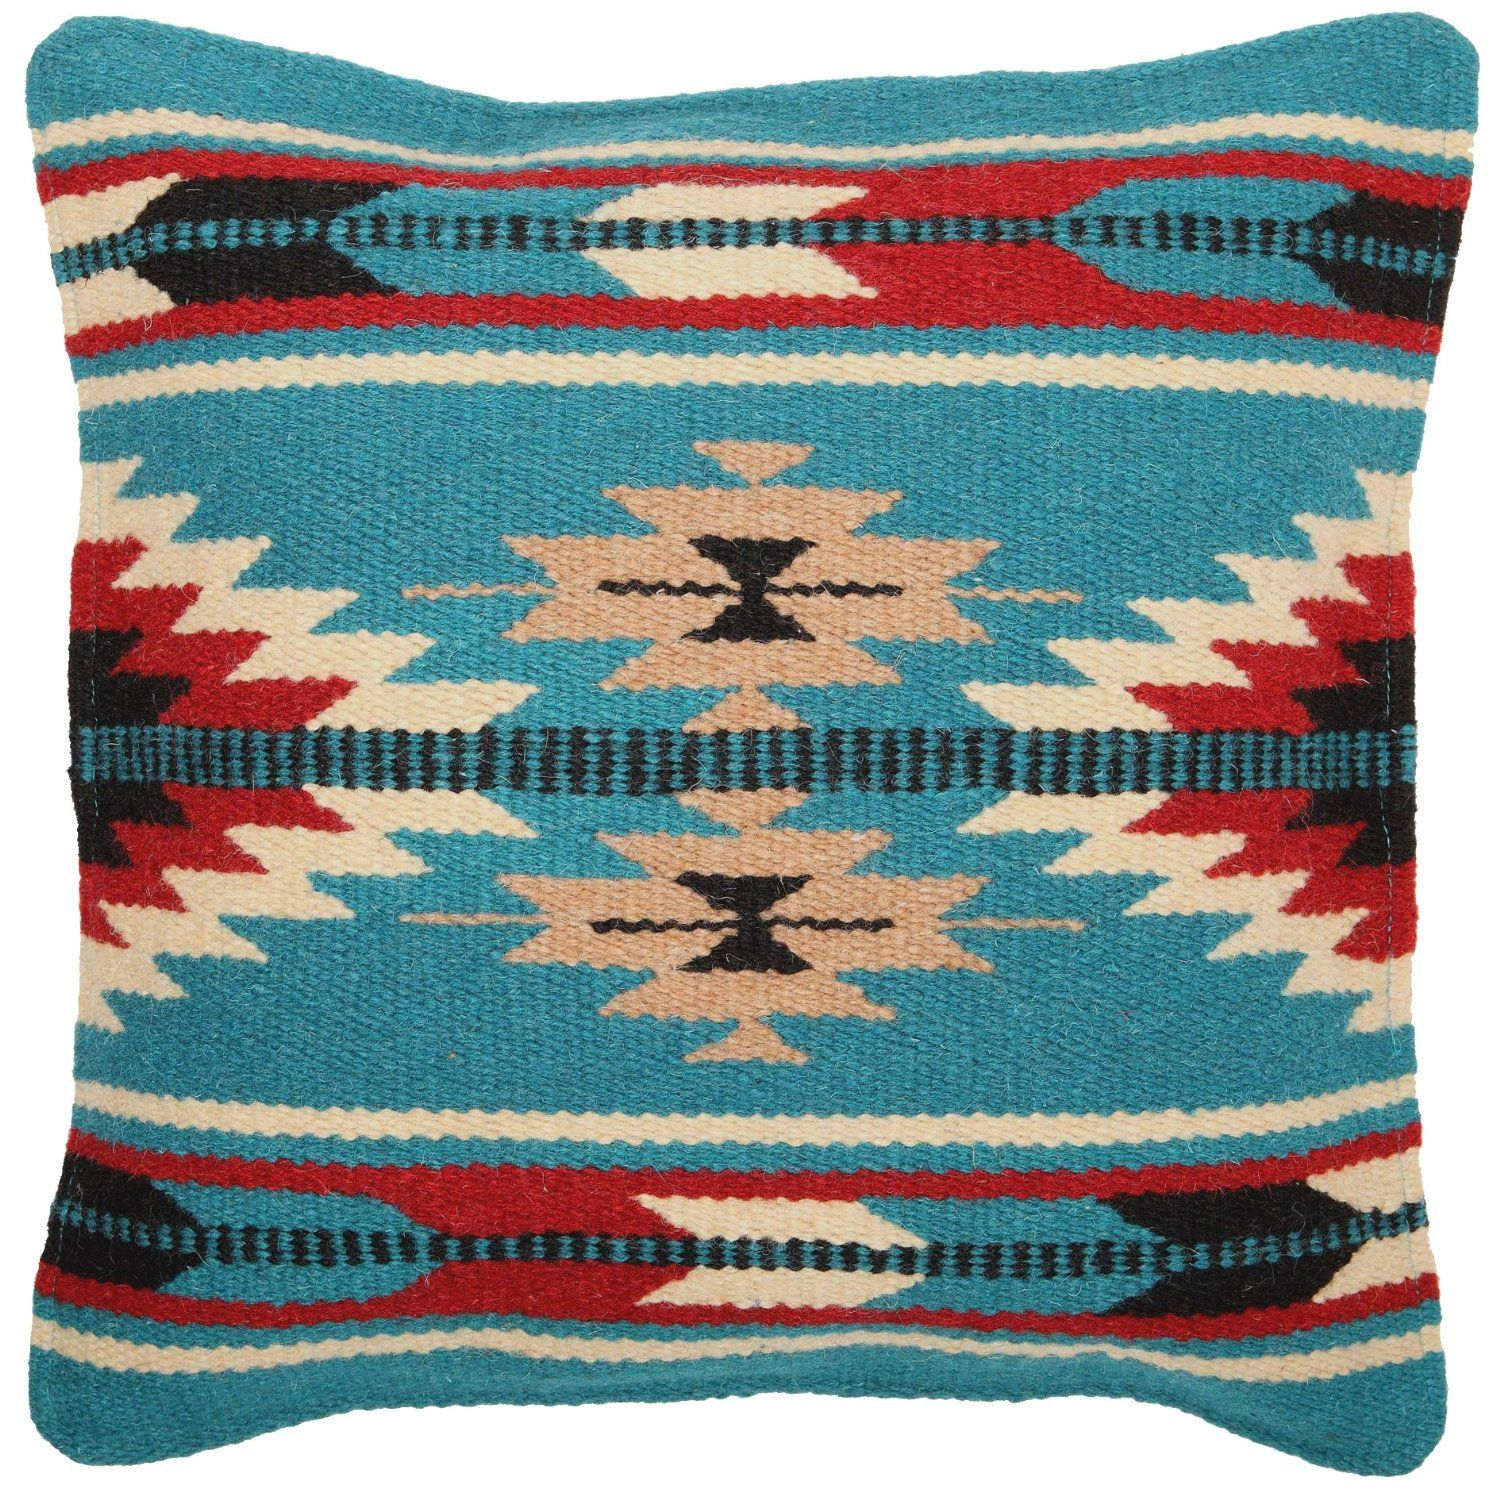 Throw Pillows Next : Throw Pillow Covers 18 X 18, Hand Woven Wool in Southwest, Mexican, and Native American Styles ...